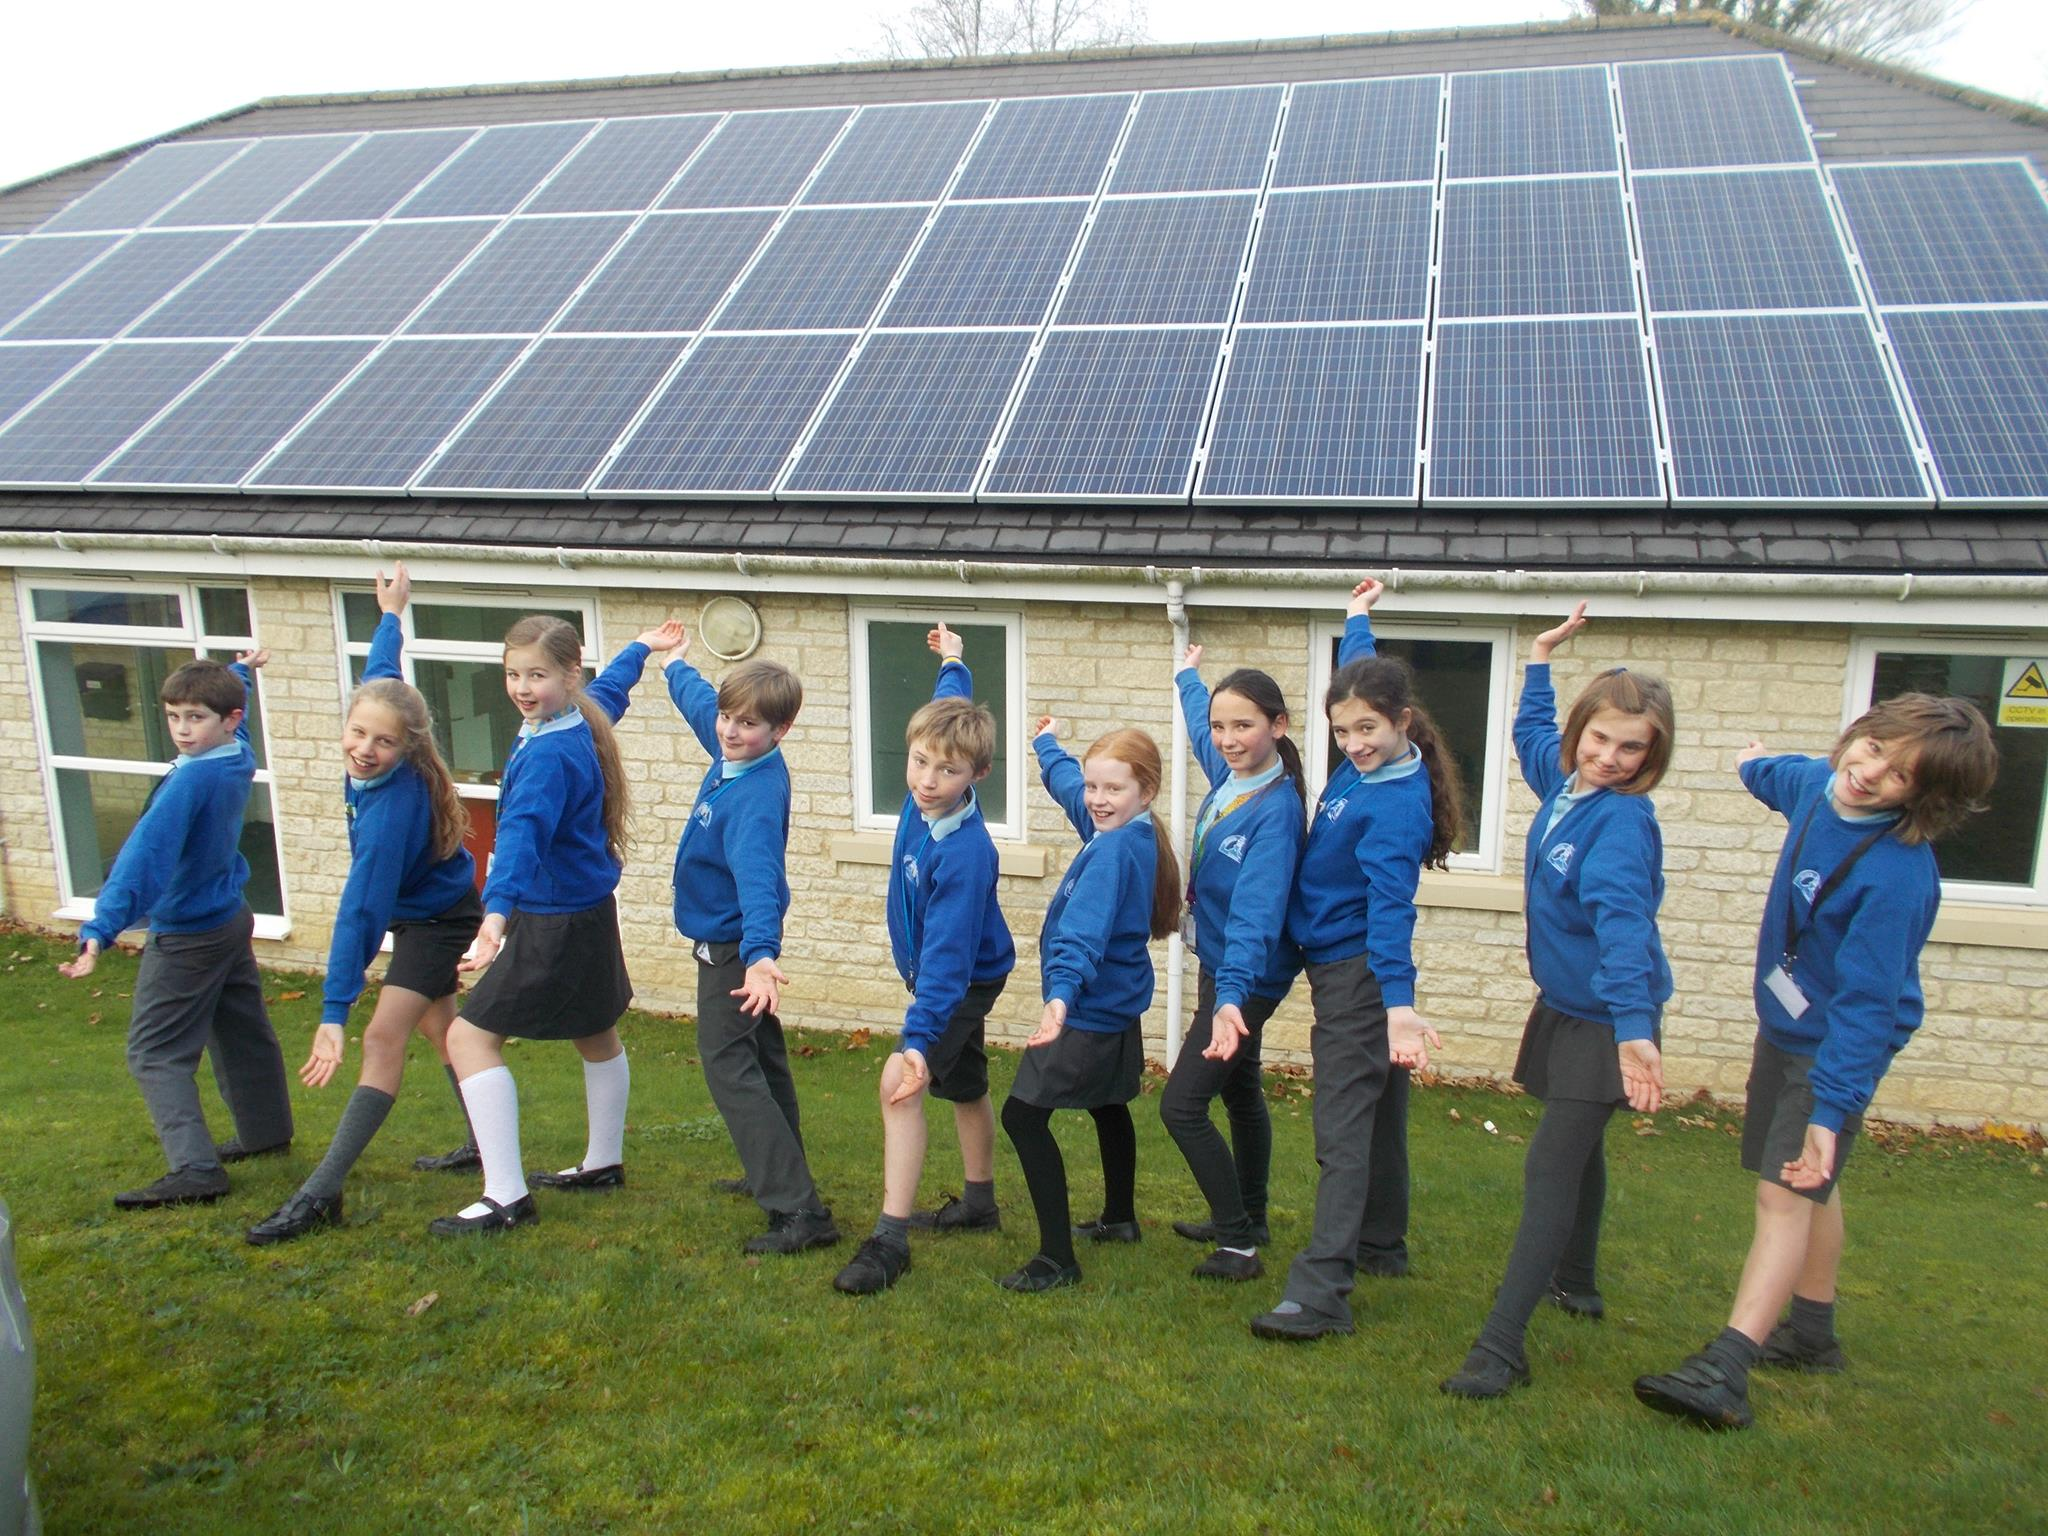 Low Carbon Hub Solar School